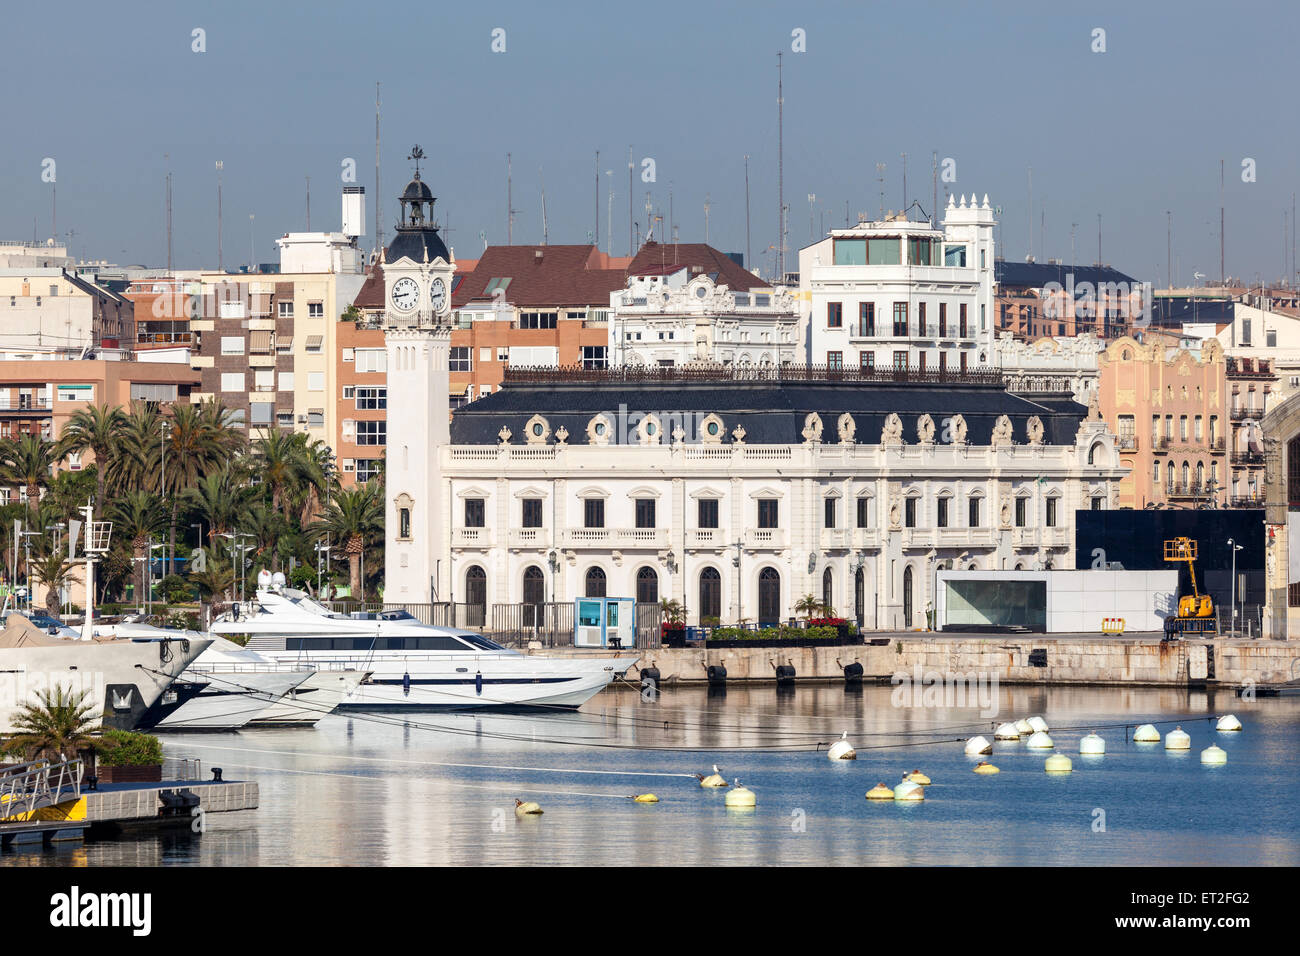 Historic Port Authority building at the old harbor of Valencia, Spain - Stock Image